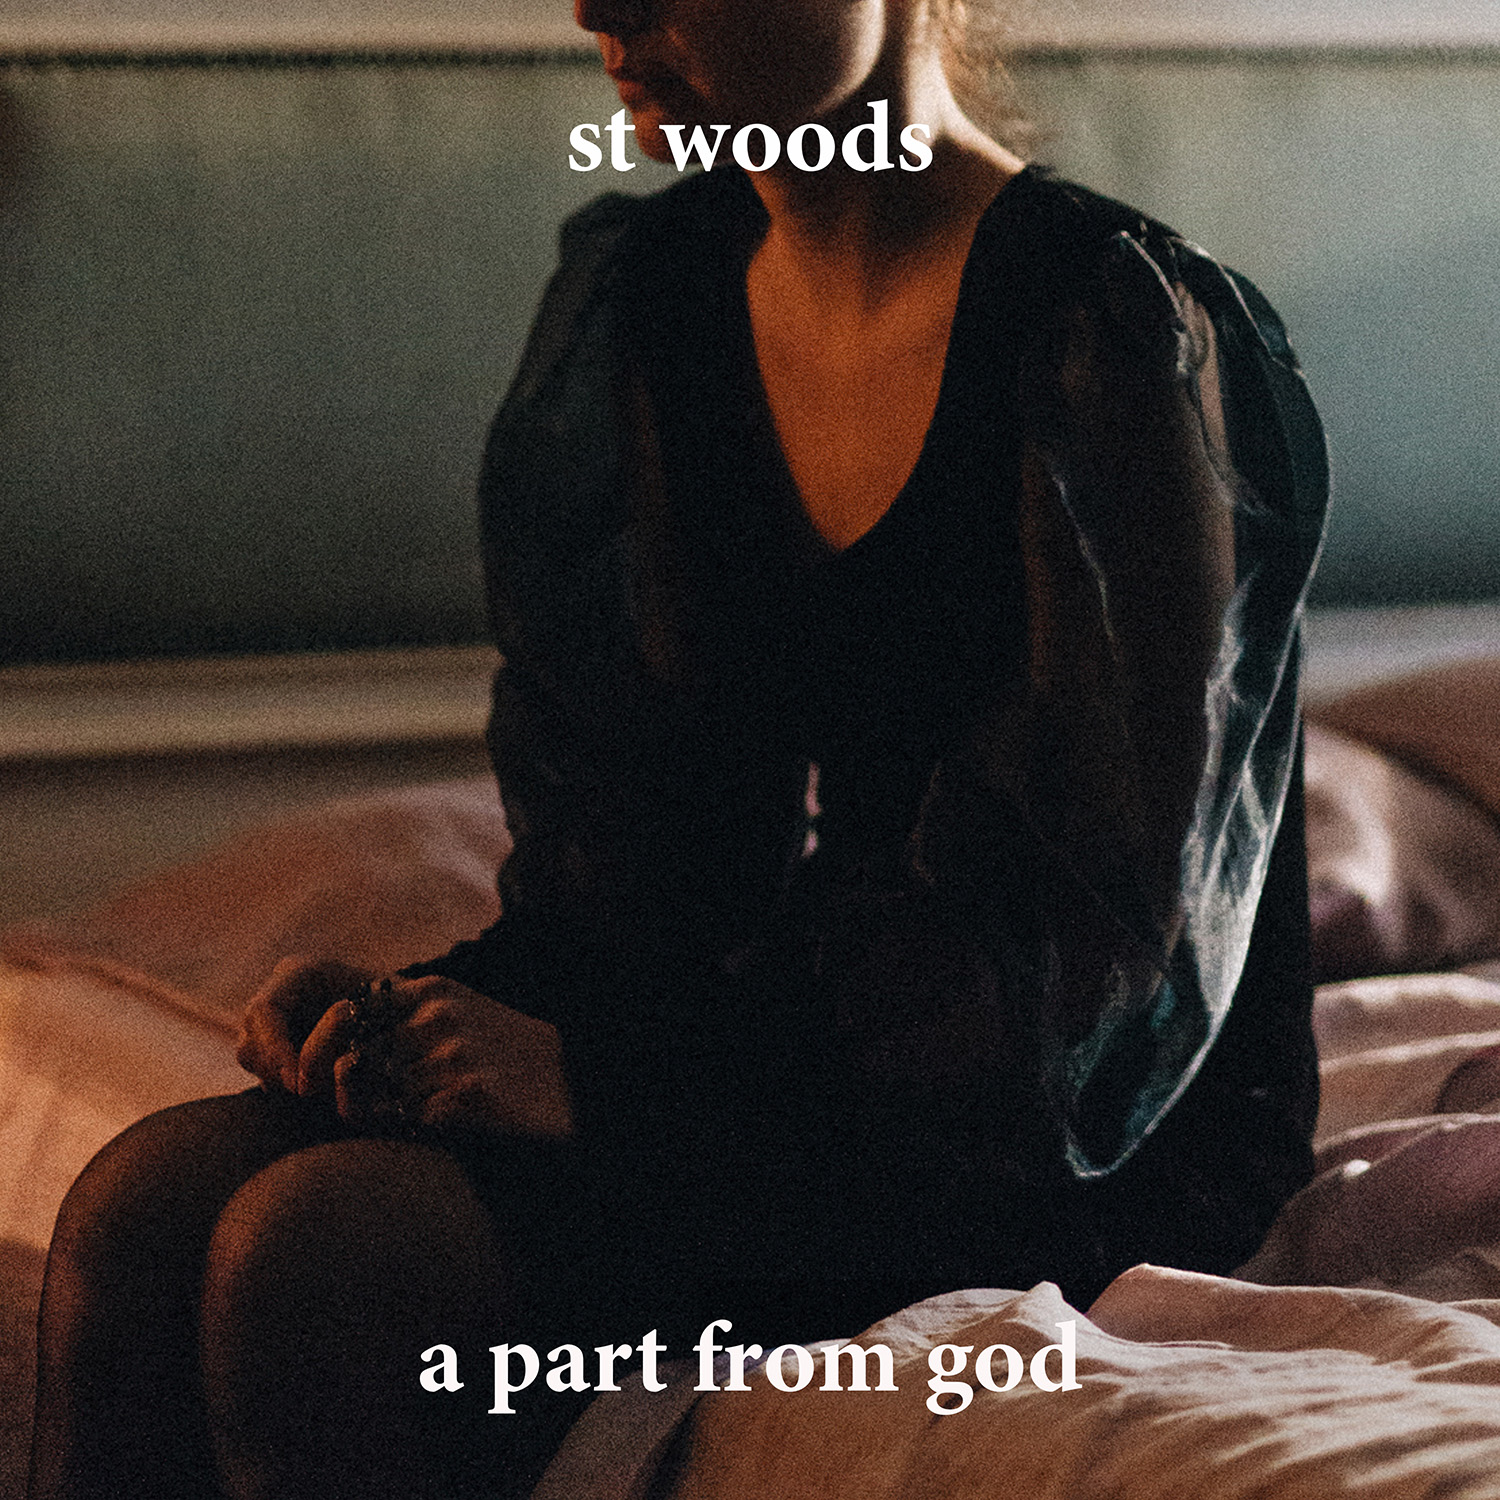 St Woods estrena su nuevo single 'A part from God'